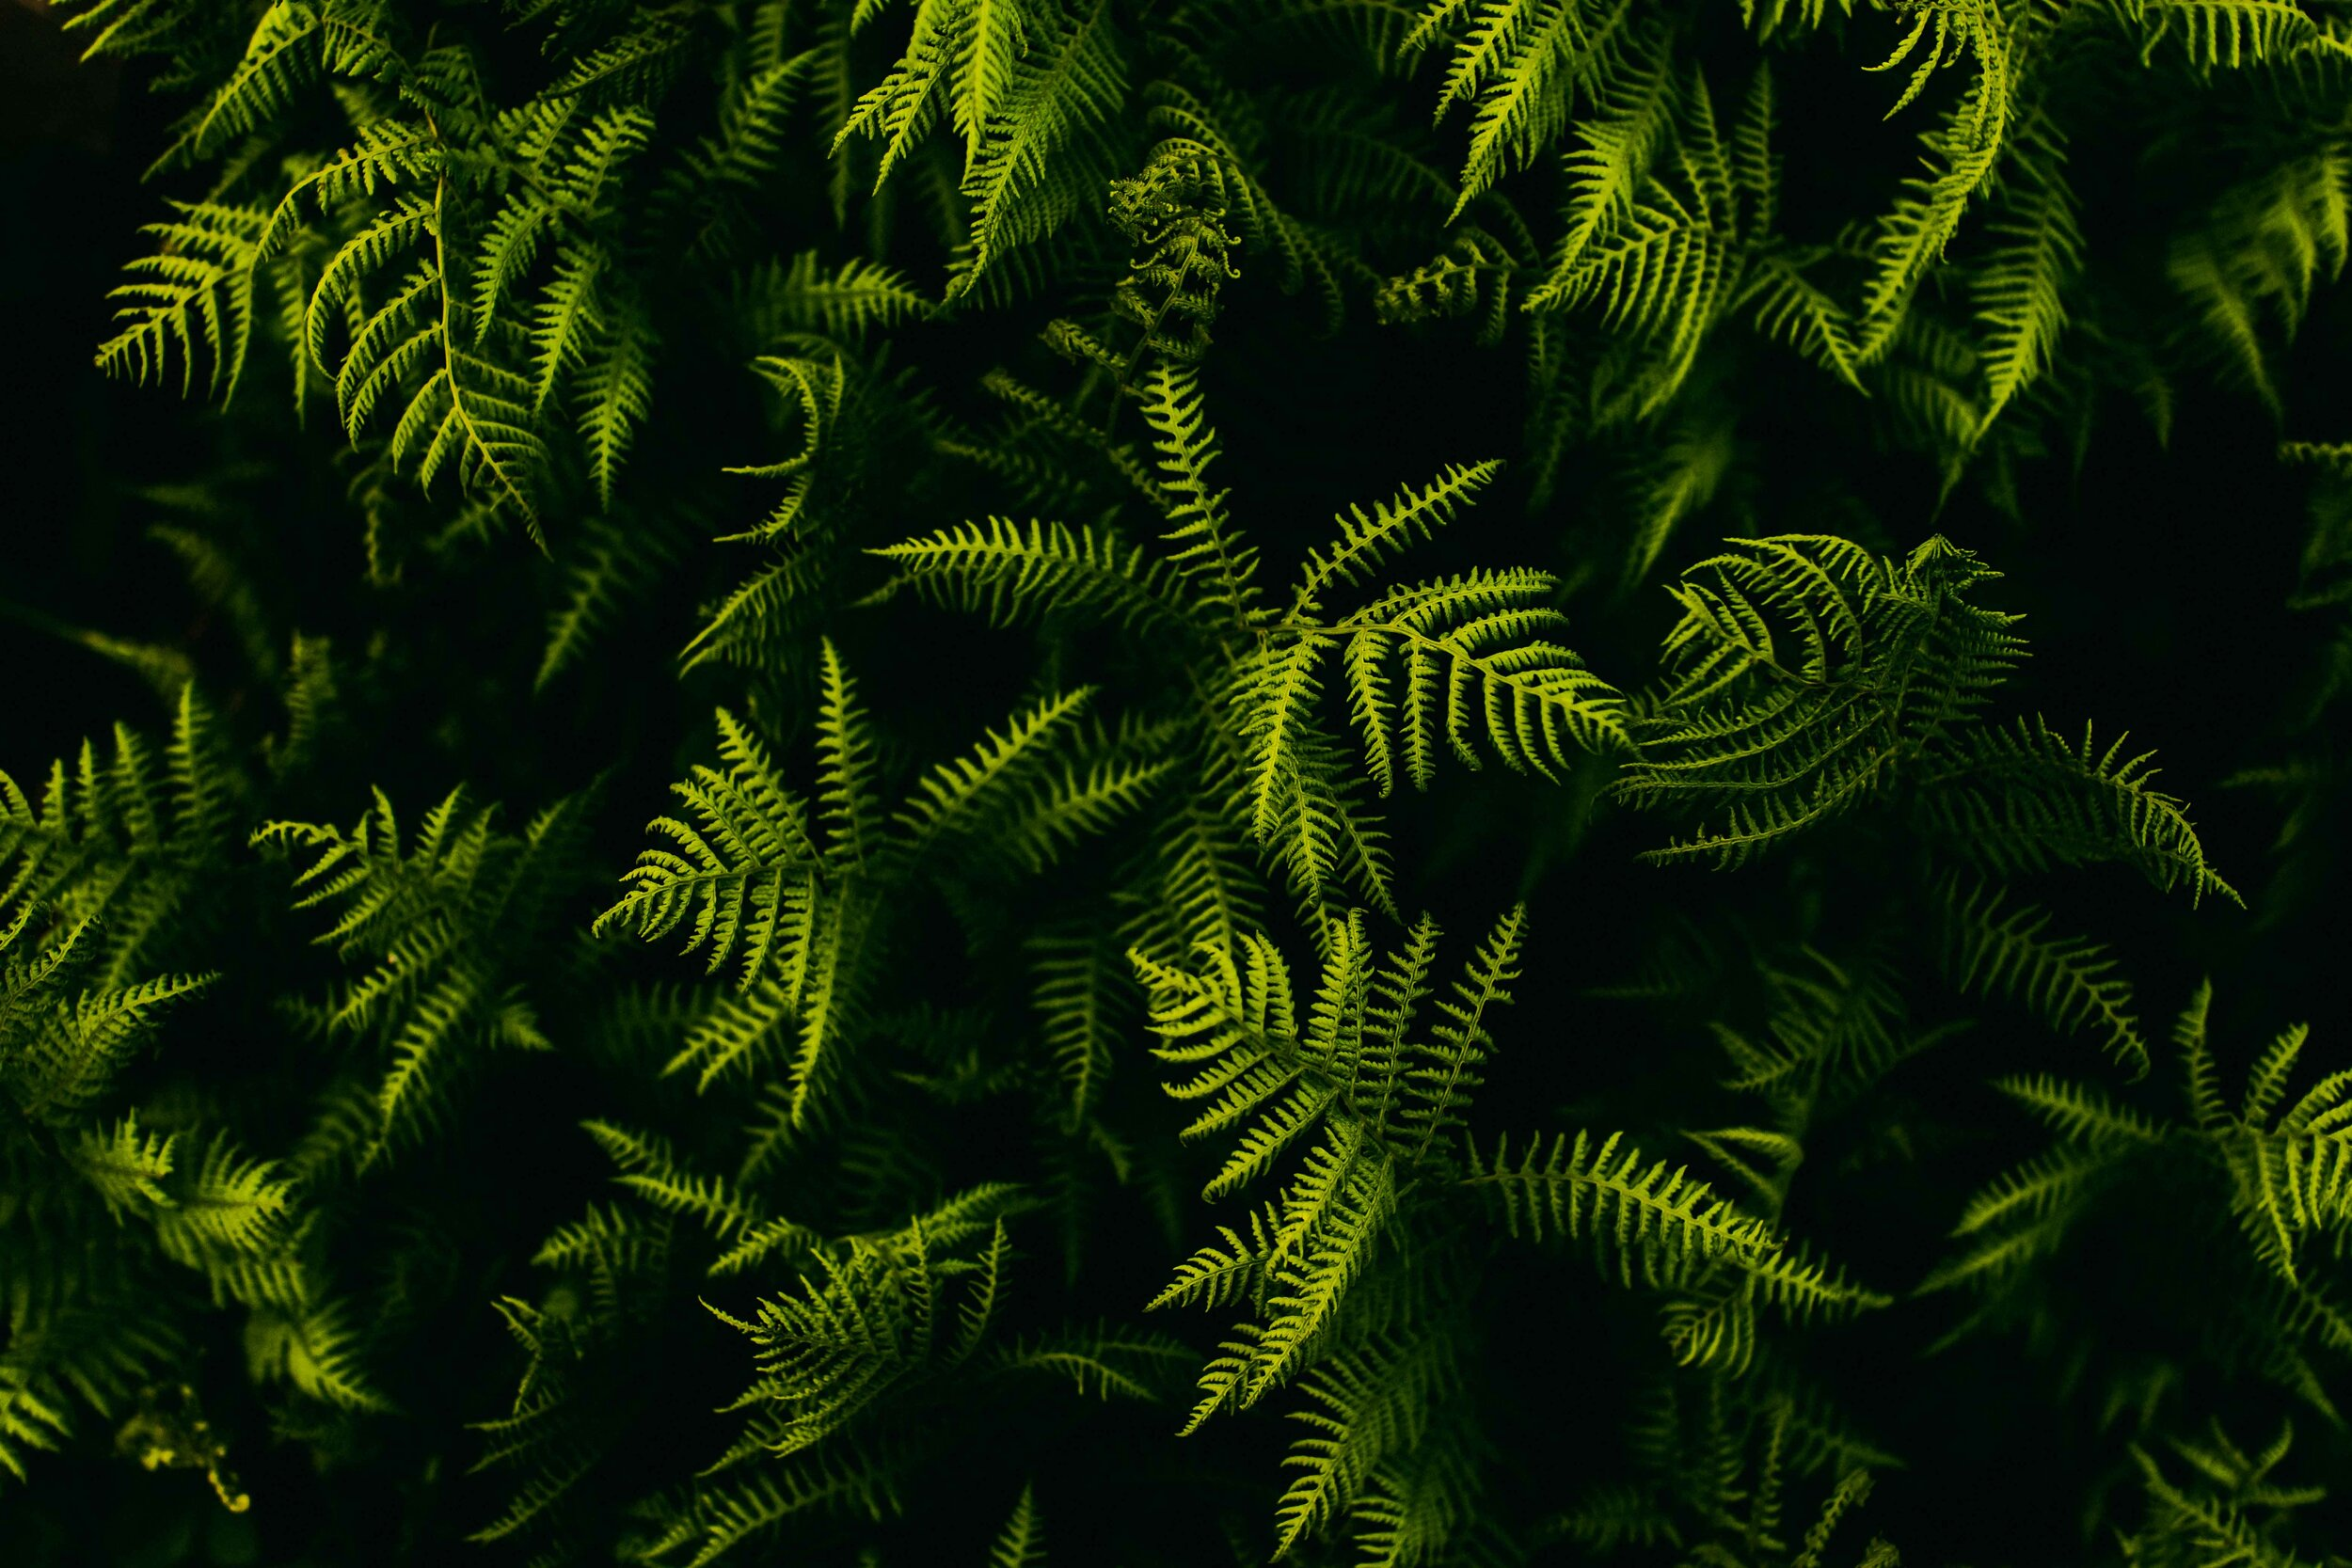 aerial view of lush green ferns